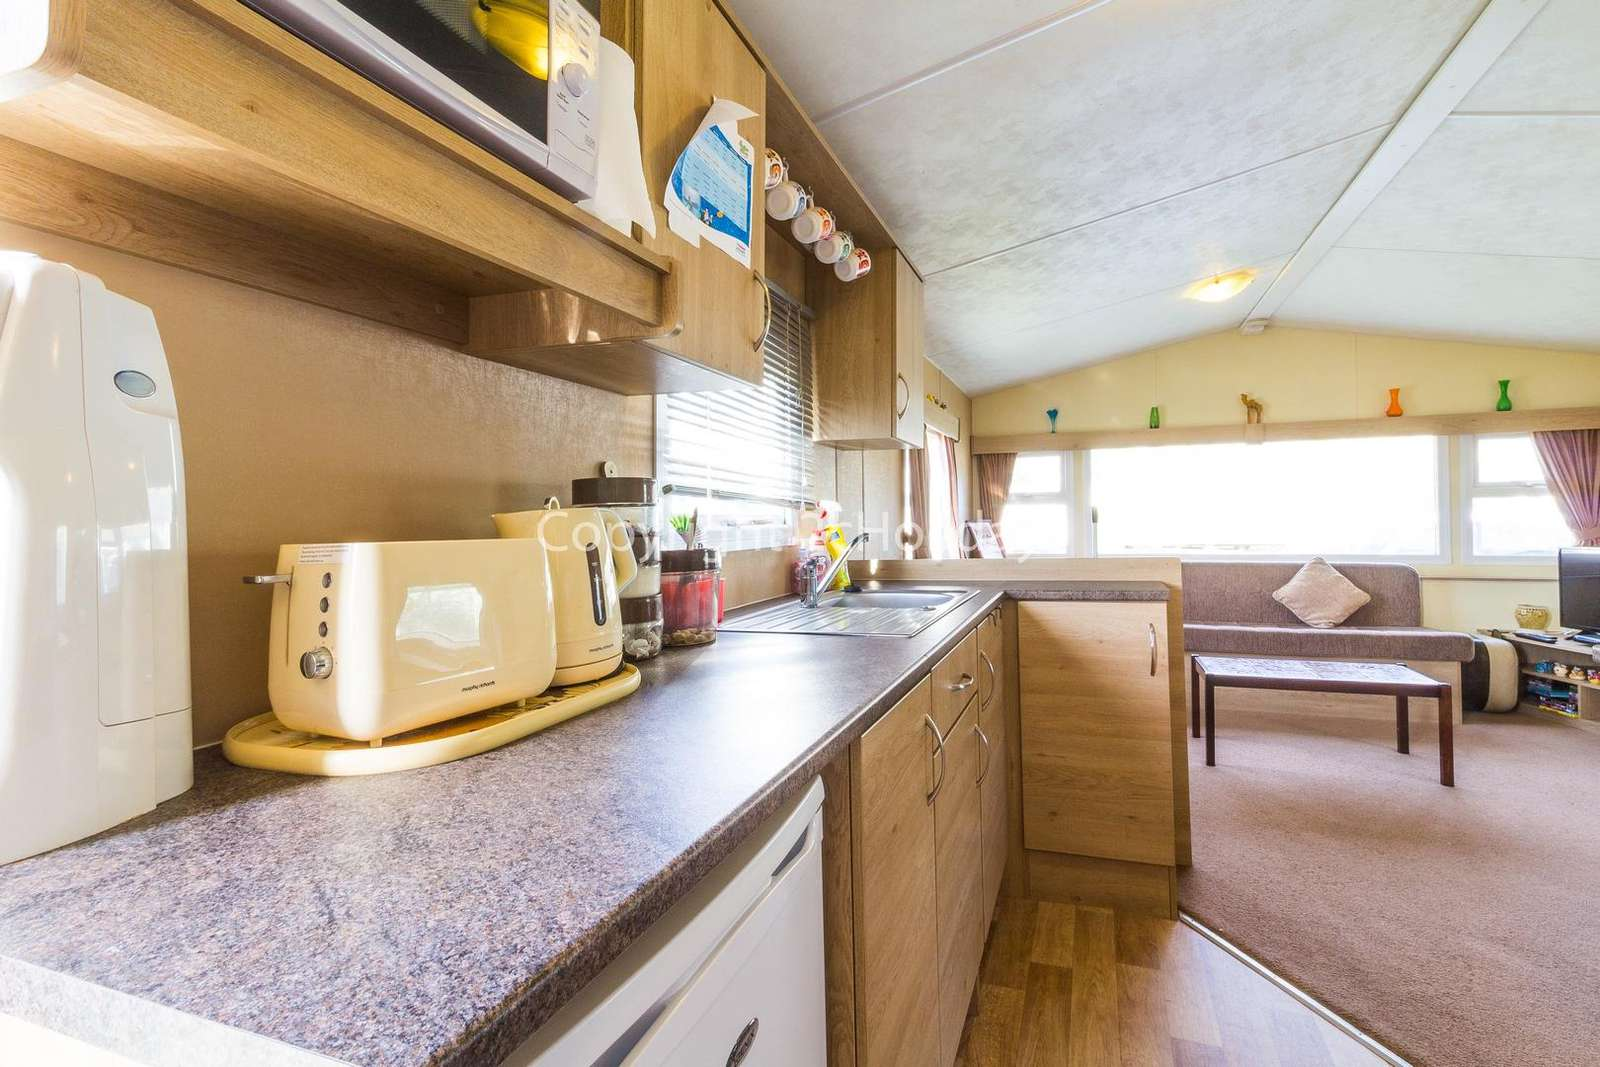 Spacious cooking area with plenty of storage cupboards